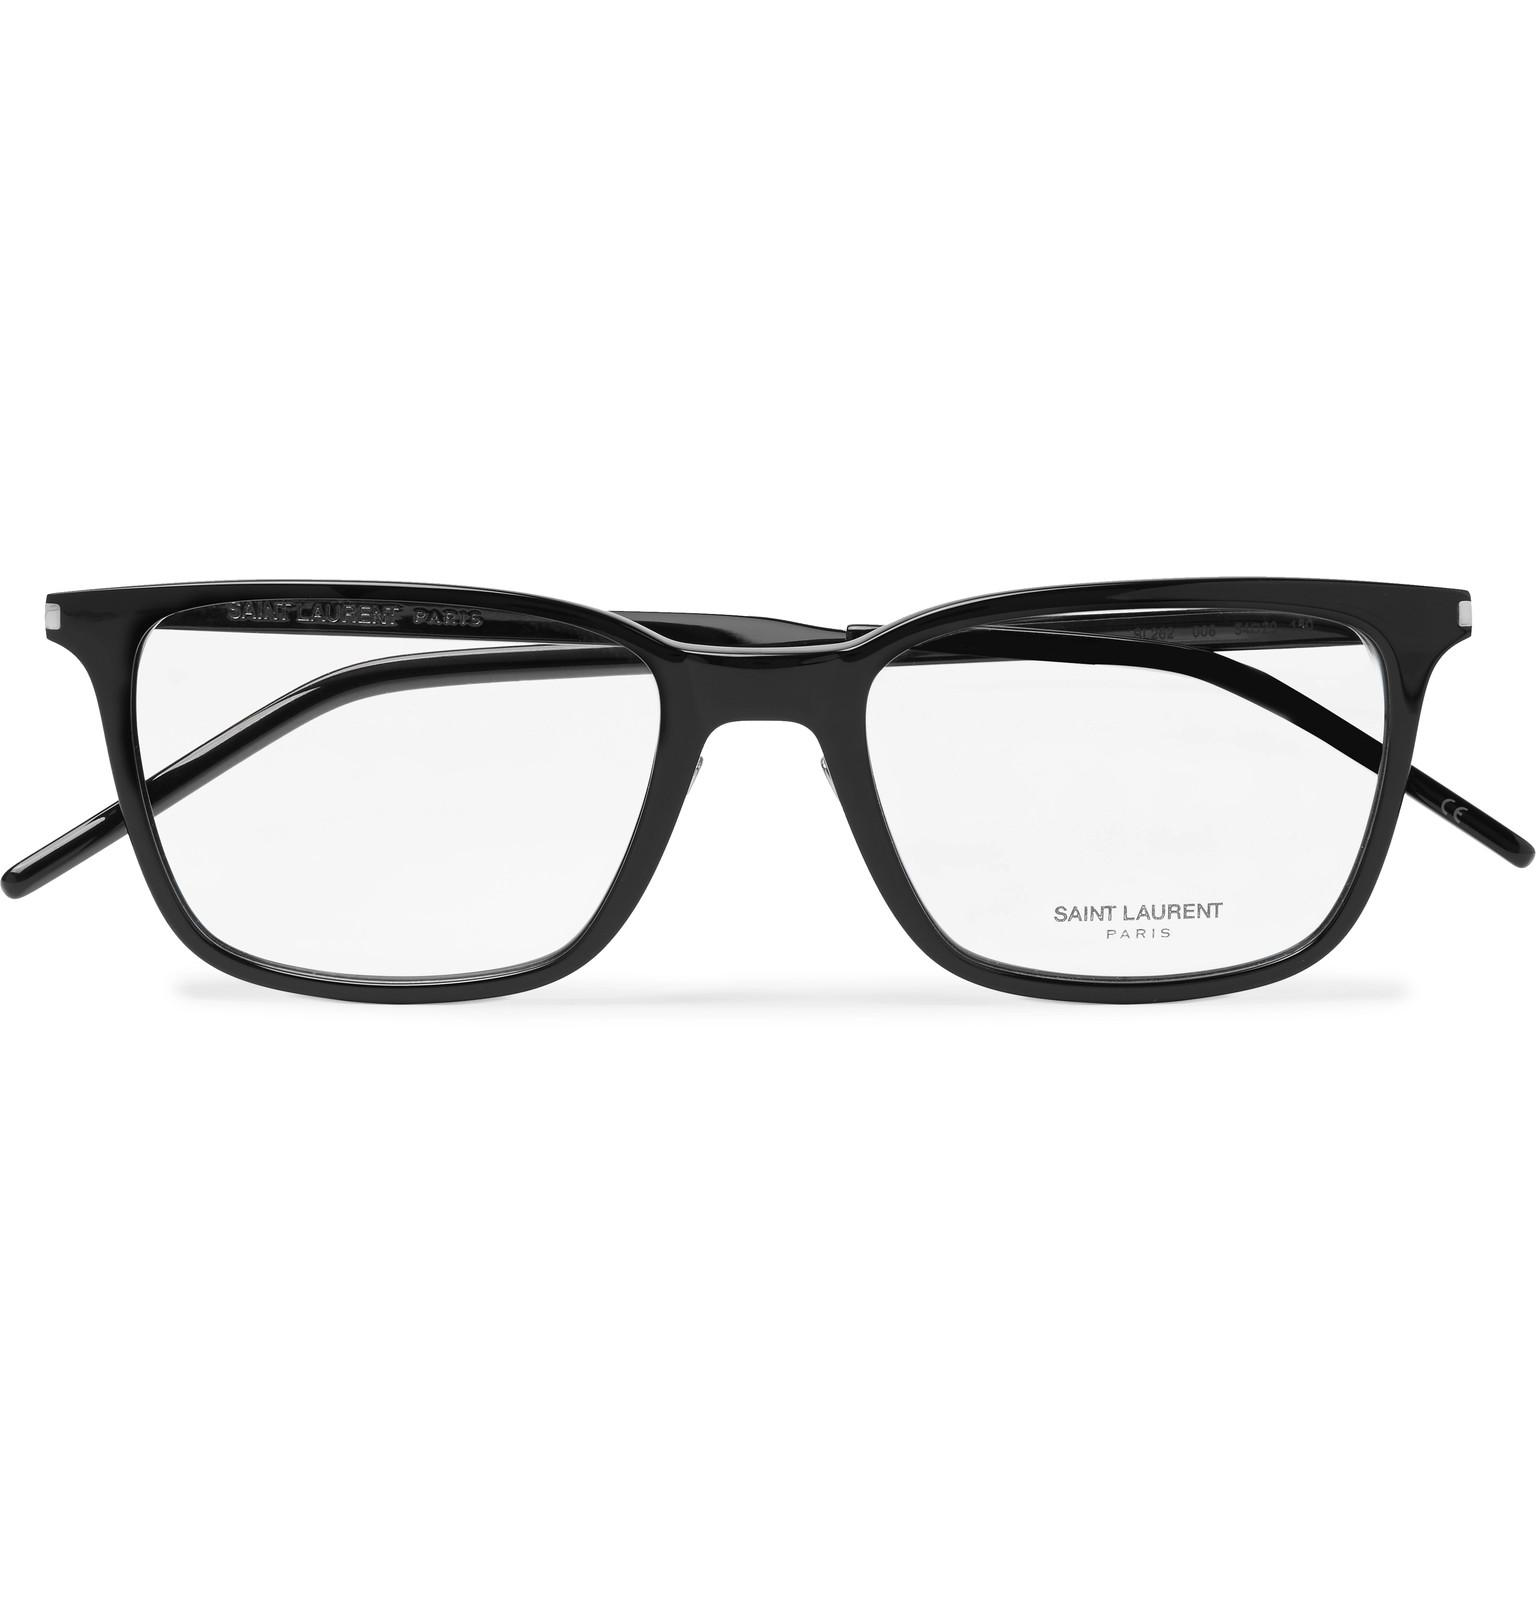 49bc2ac2cfa ... Black Square-frame Acetate And Silver-tone Optical Glasses for Men.  View fullscreen